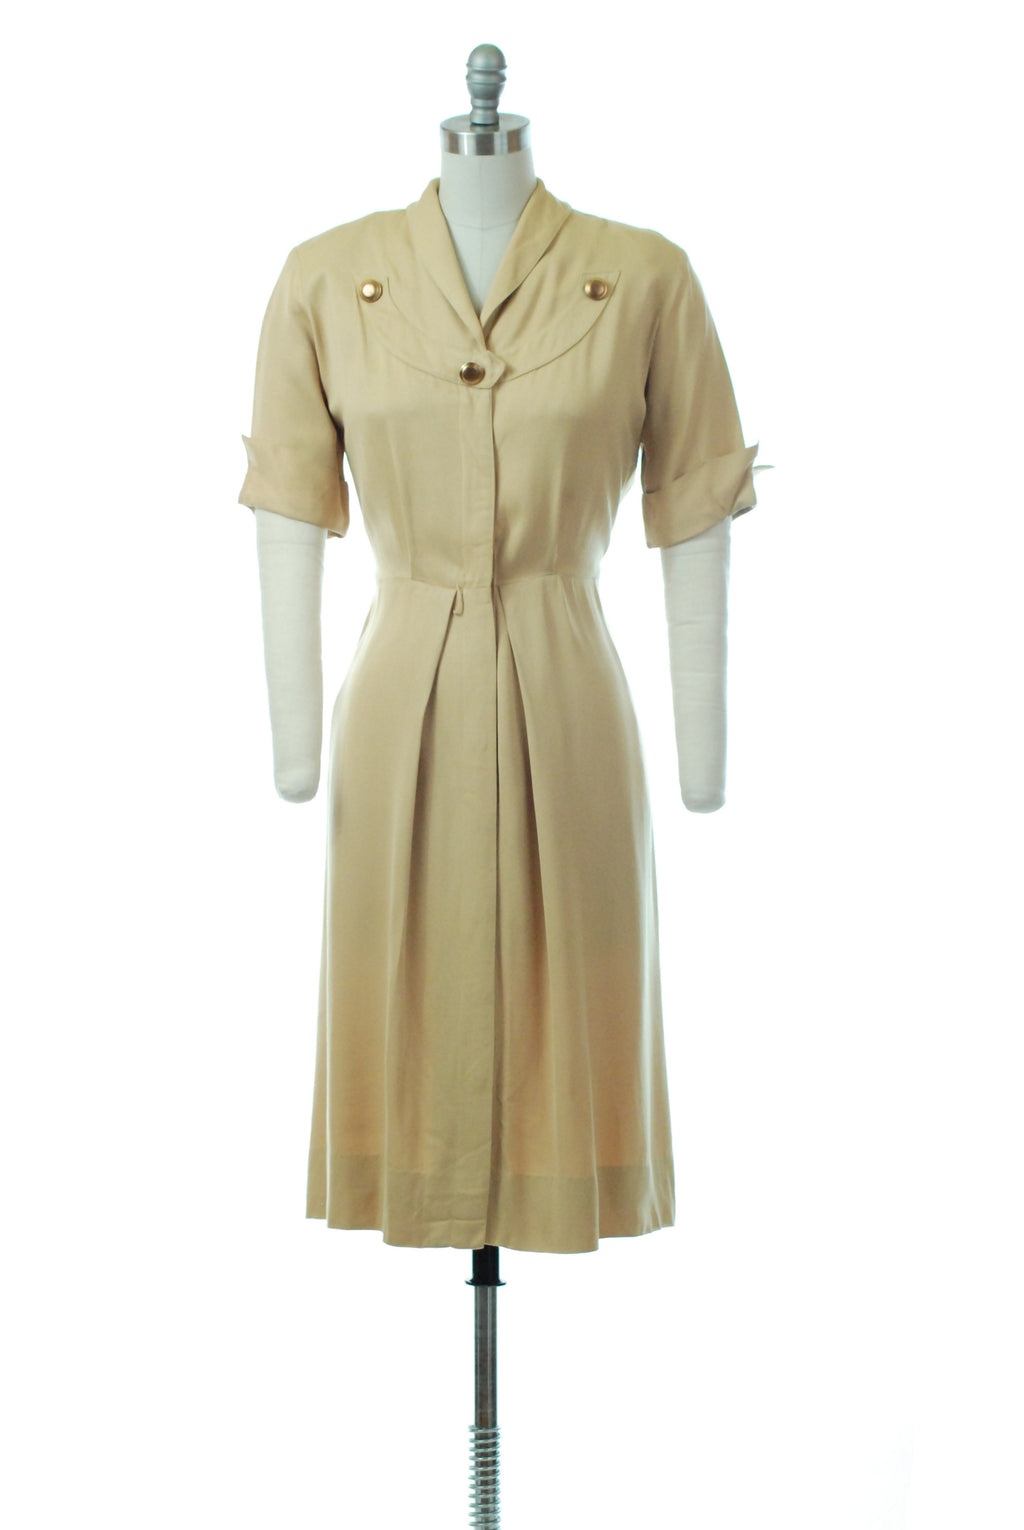 Sophisticated 1940s Gabardine Day Dress in Muted Mustard Yellow